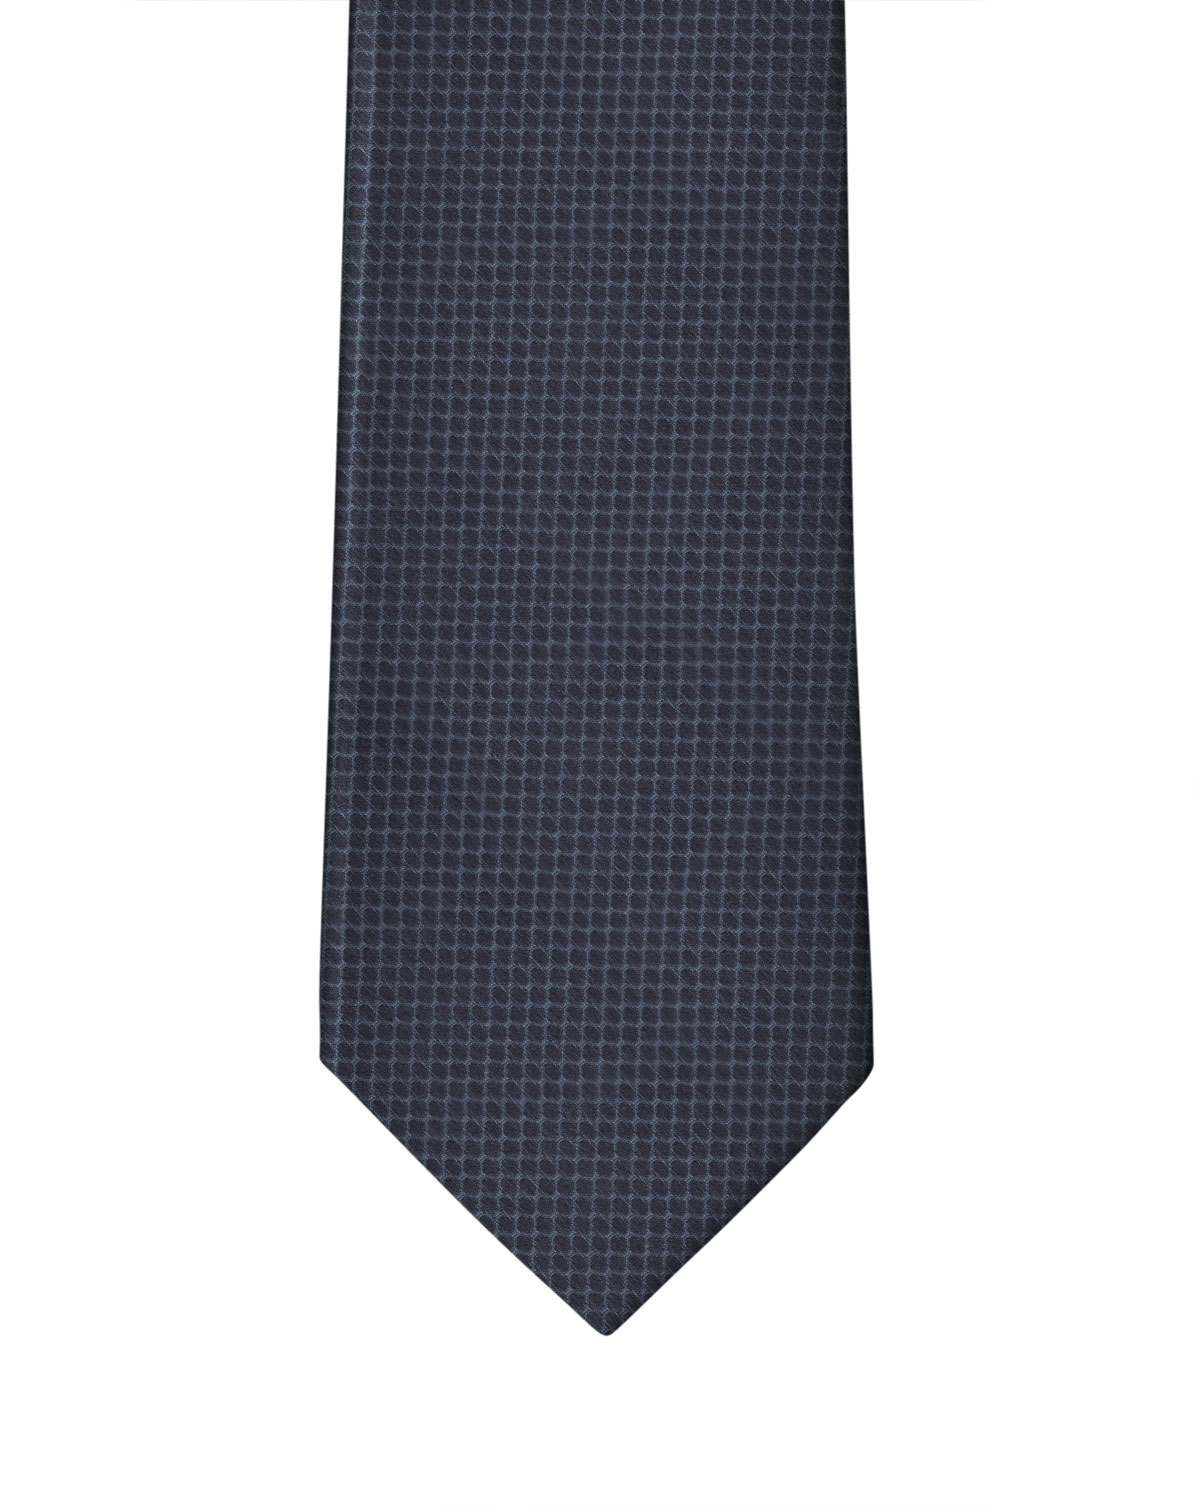 Navy Diamond Textured Necktie